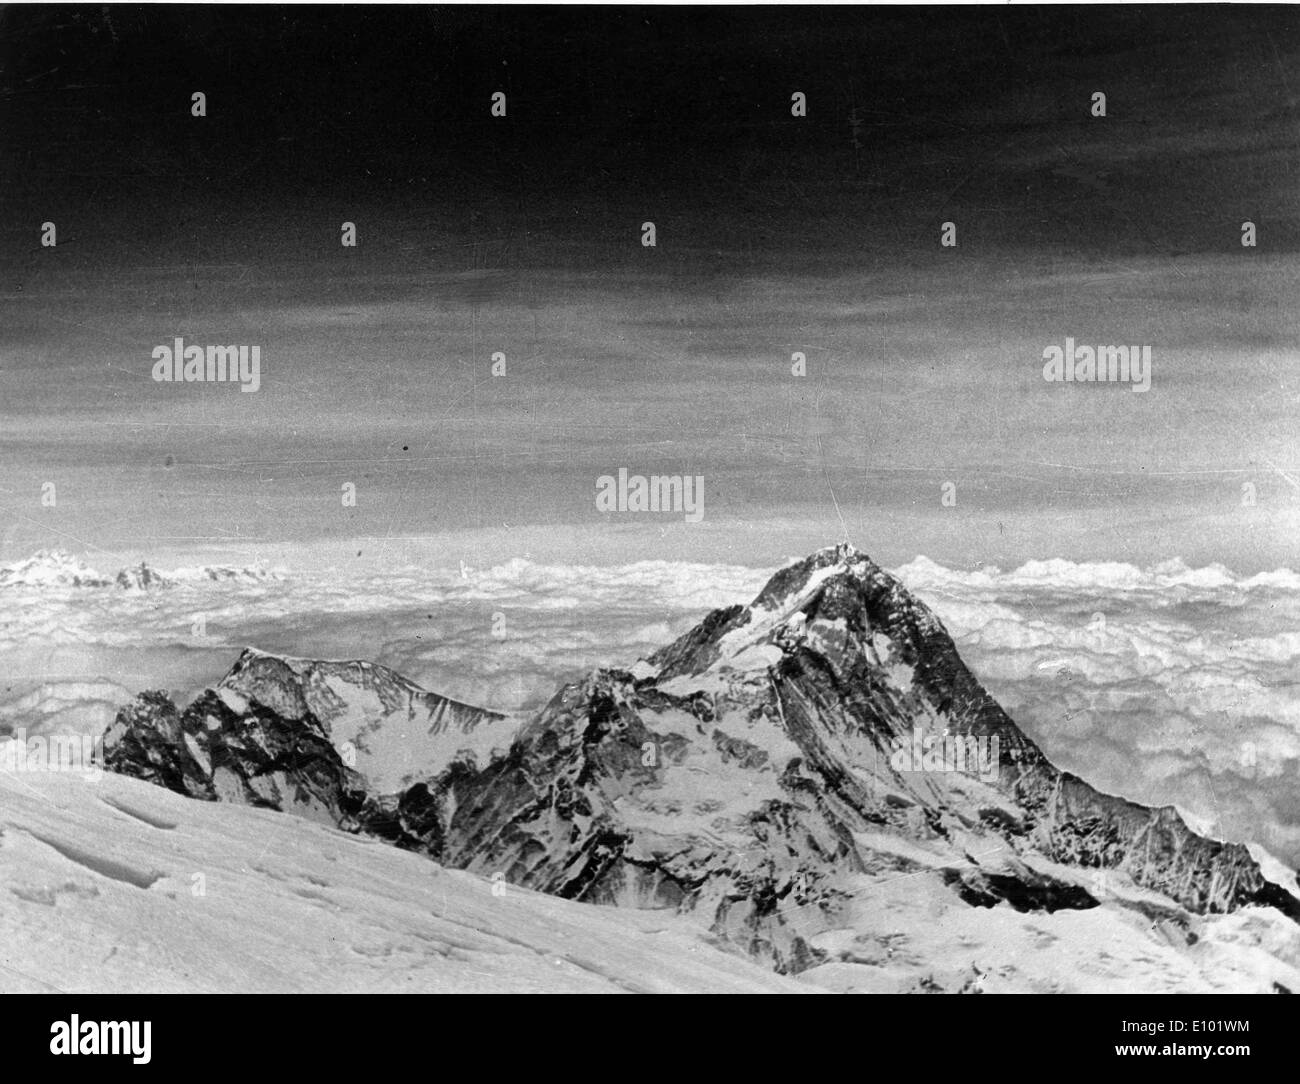 MOUNT EVEREST is the Earth's highest mountain, with a peak at 8,848 metres above sea level. - Stock Image